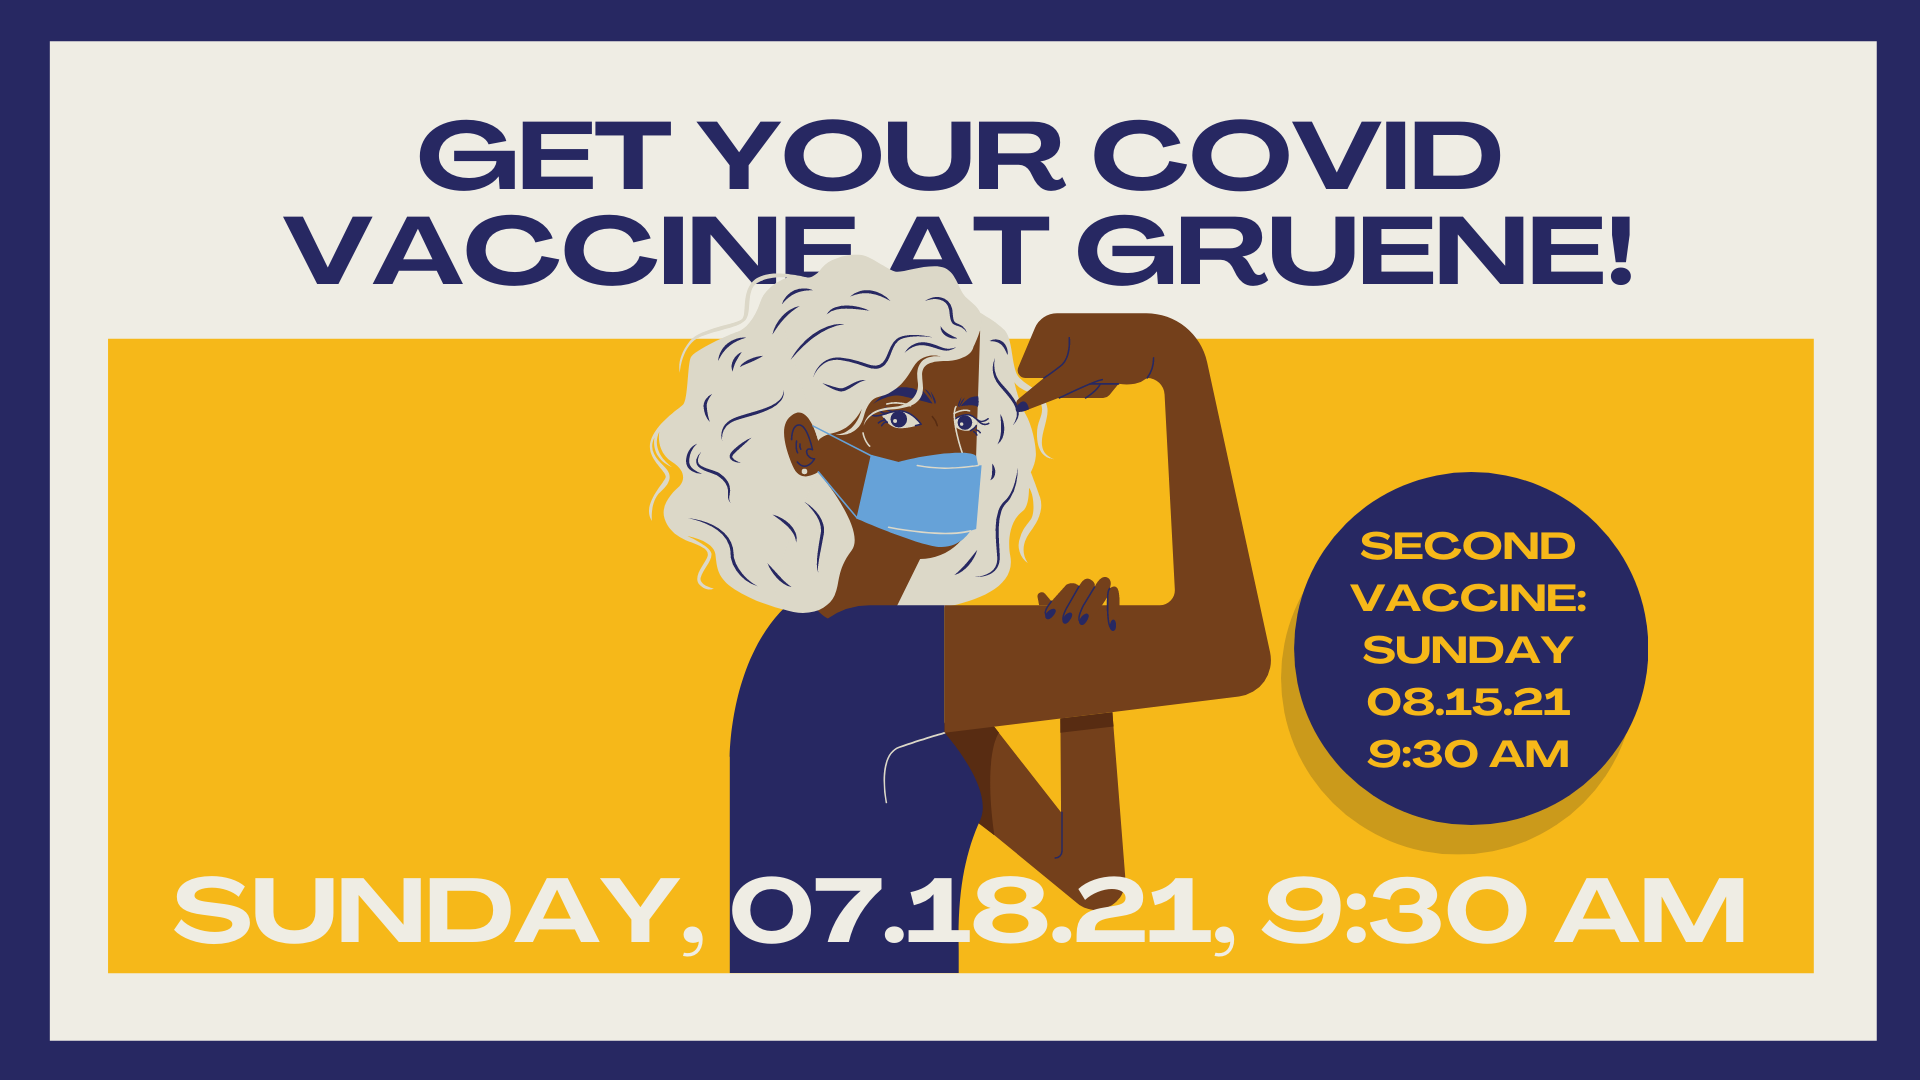 Get your COVID Vaccine at Gruene!